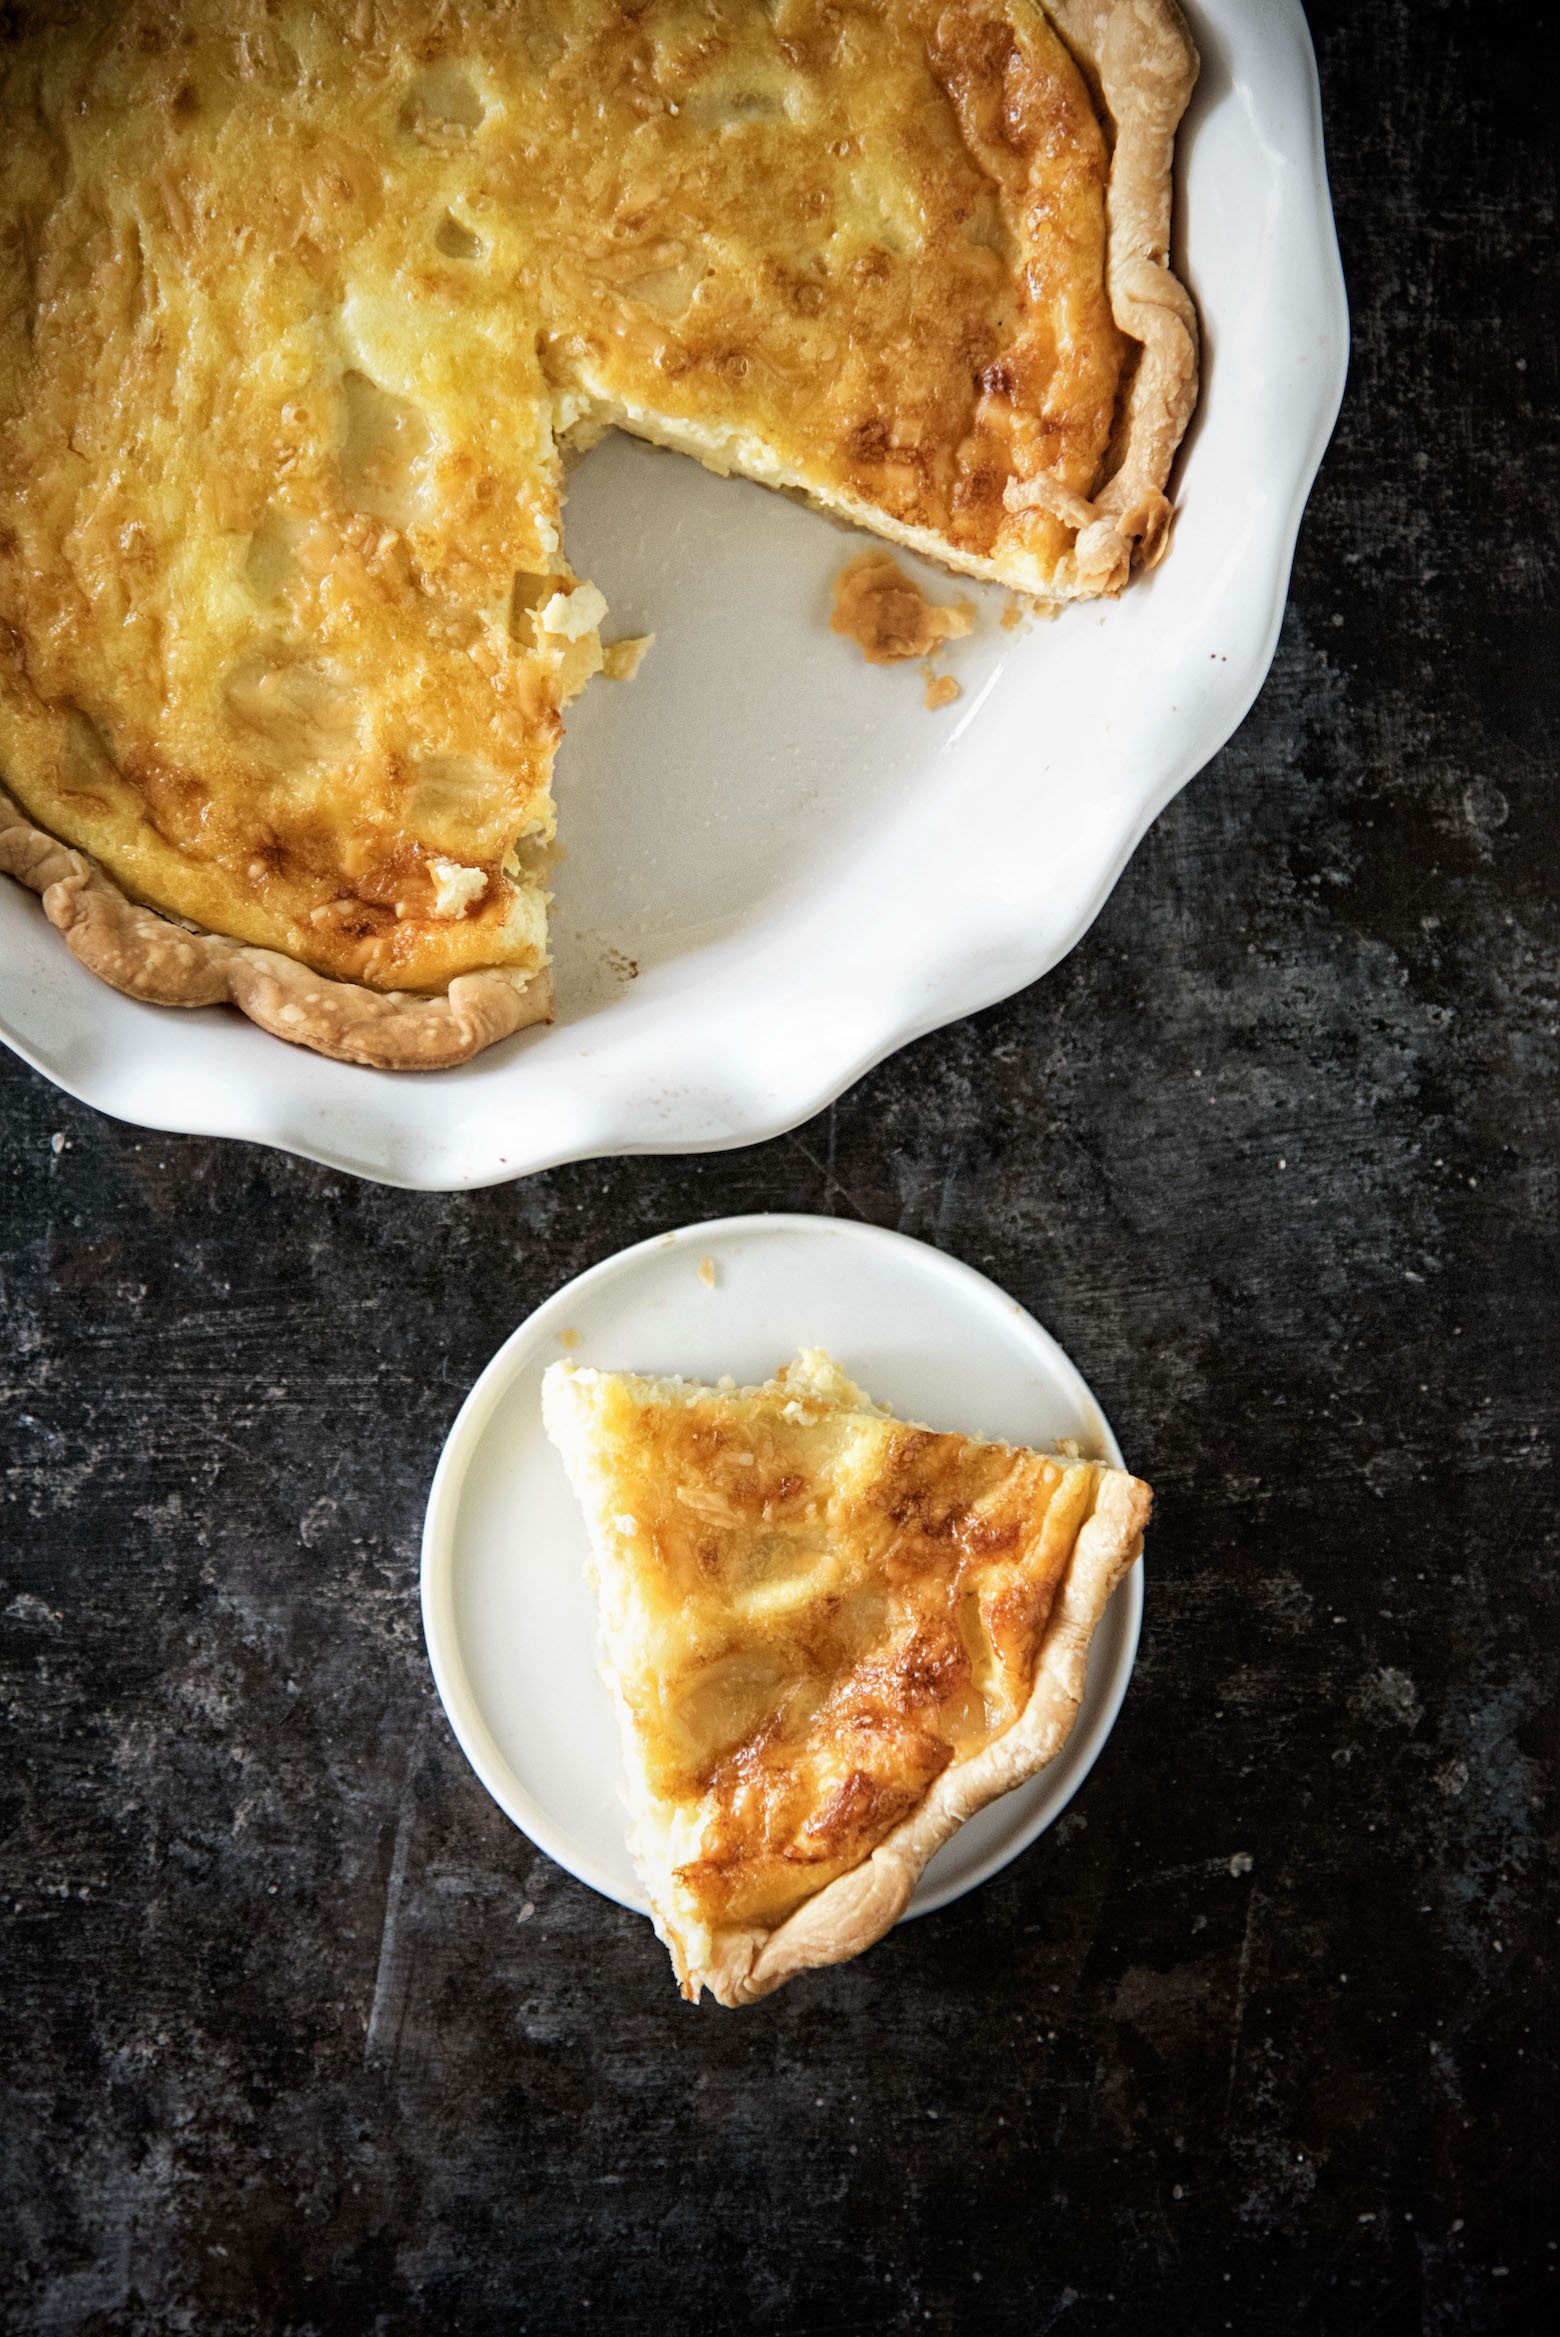 Vegetarian Gruyere Aged Smoked Gouda Caramelized Onion Quiche